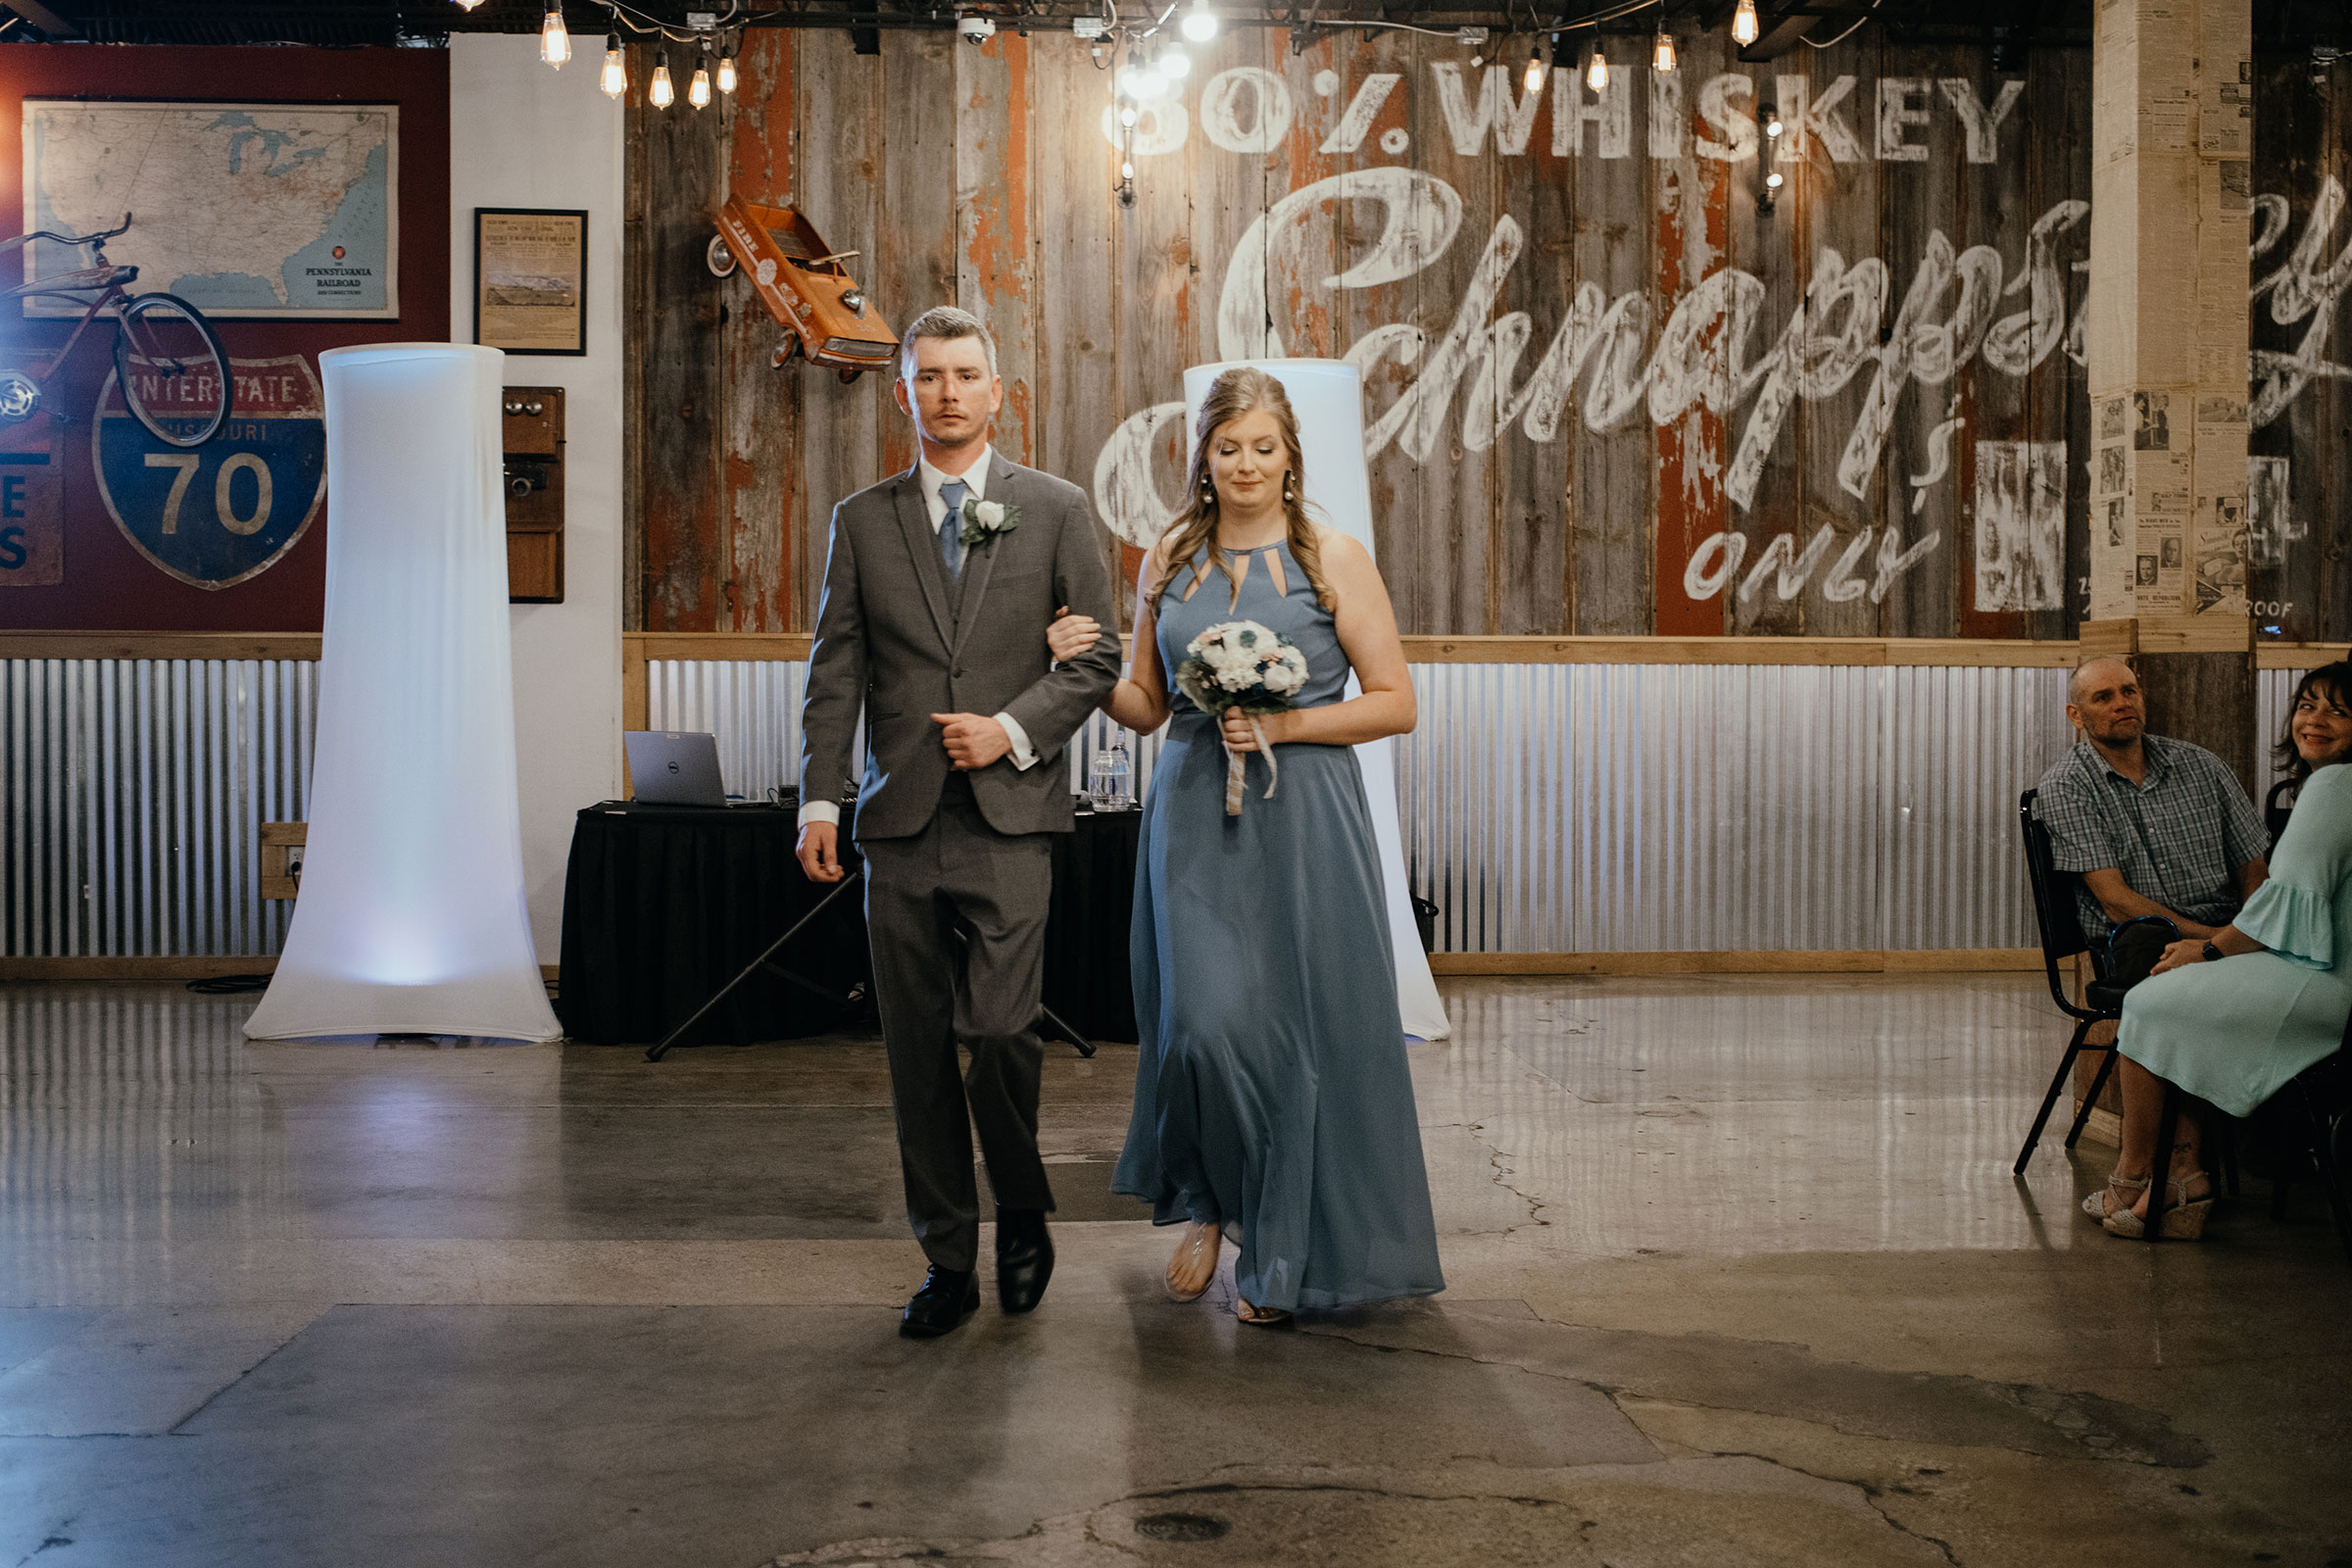 bridesmaid-walking-with-groomsmen-looking-down-decades-event-center-building-desmoines-iowa-raelyn-ramey-photography..jpg